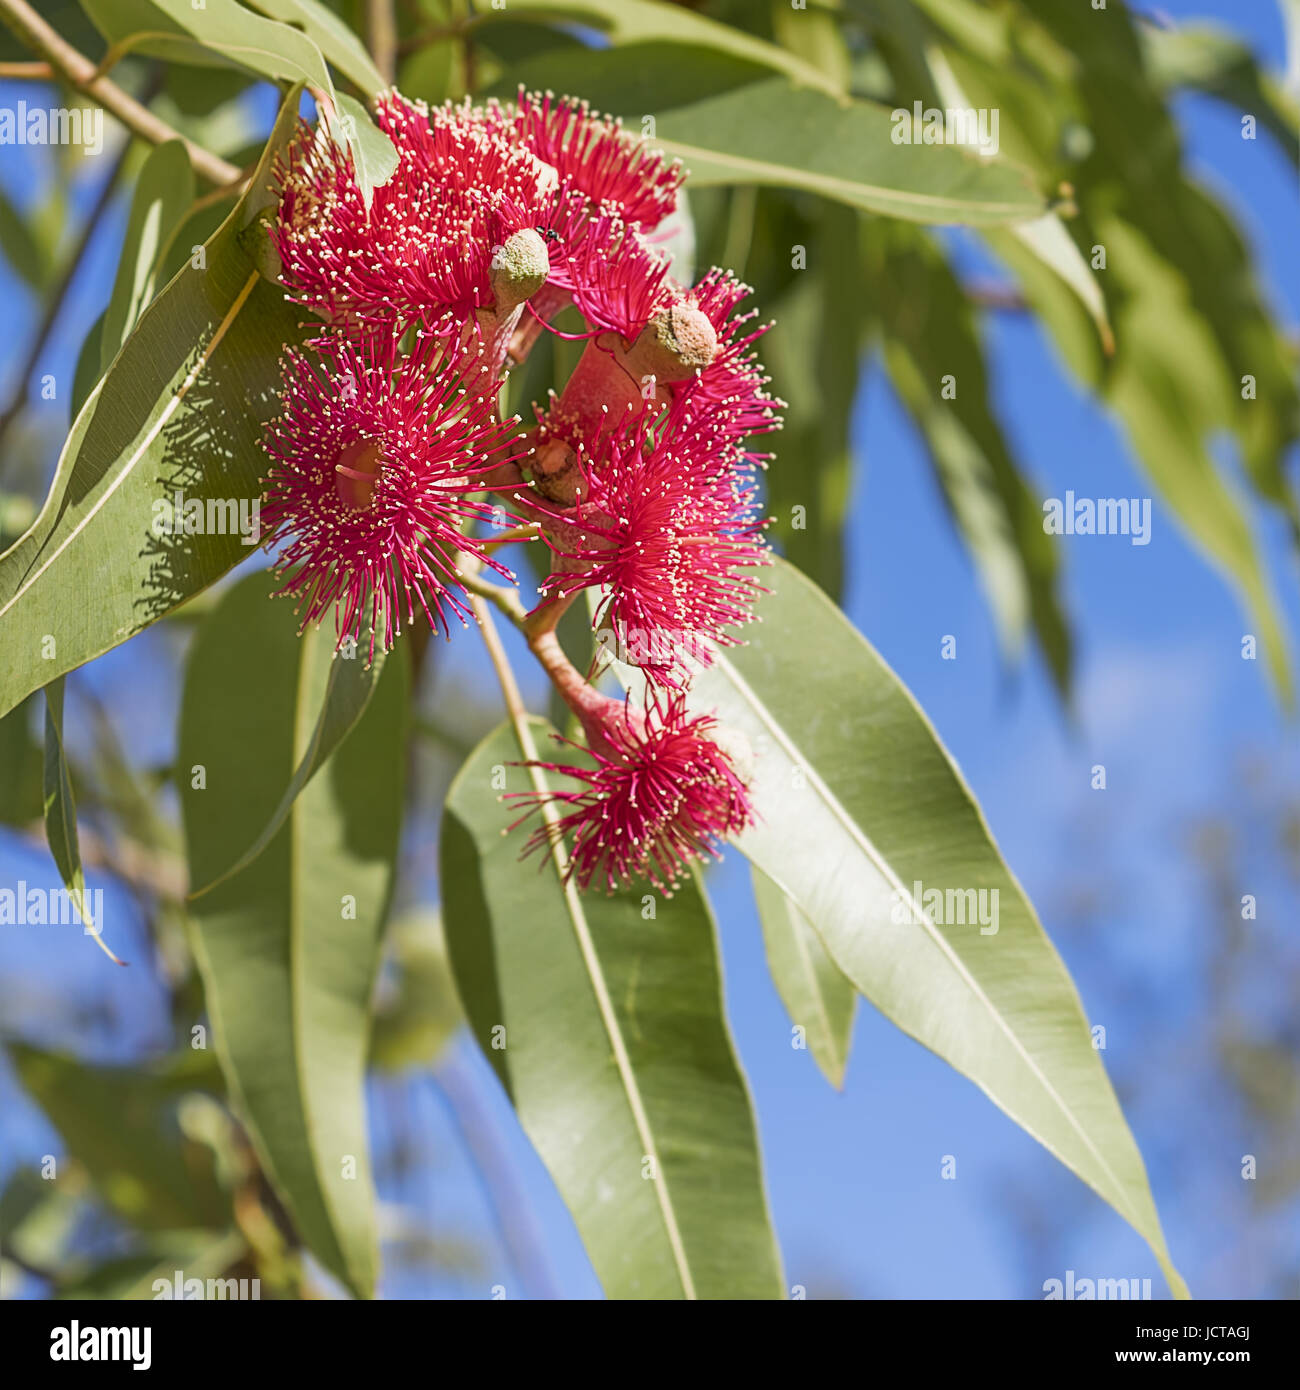 Australian iconic red eucalyptus flowers with green gum leaves and blue sky background close up in square format - Stock Image